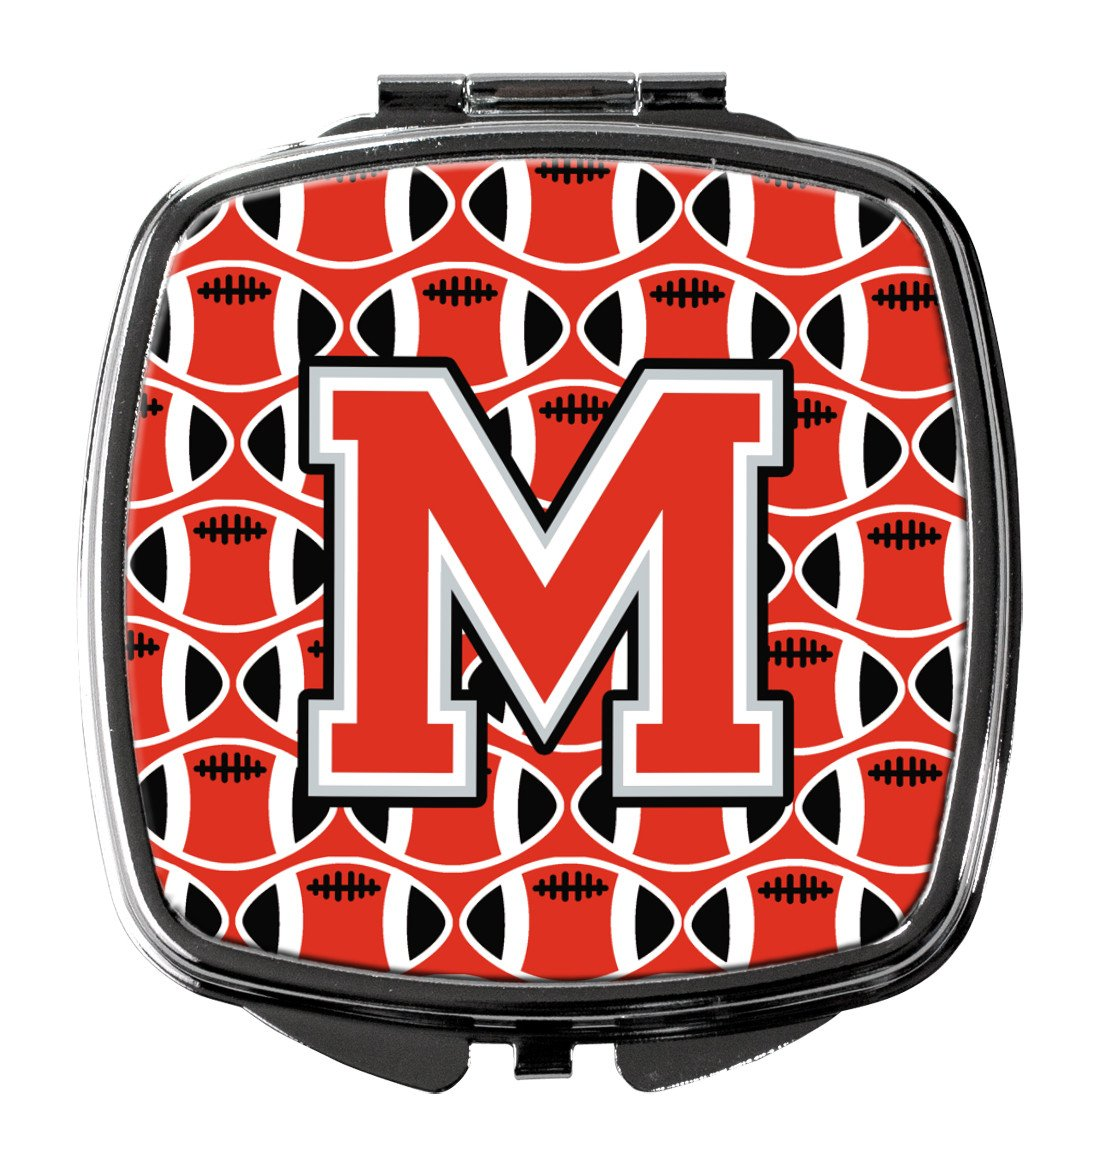 Letter M Football Scarlet and Grey Compact Mirror CJ1067-MSCM by Caroline's Treasures